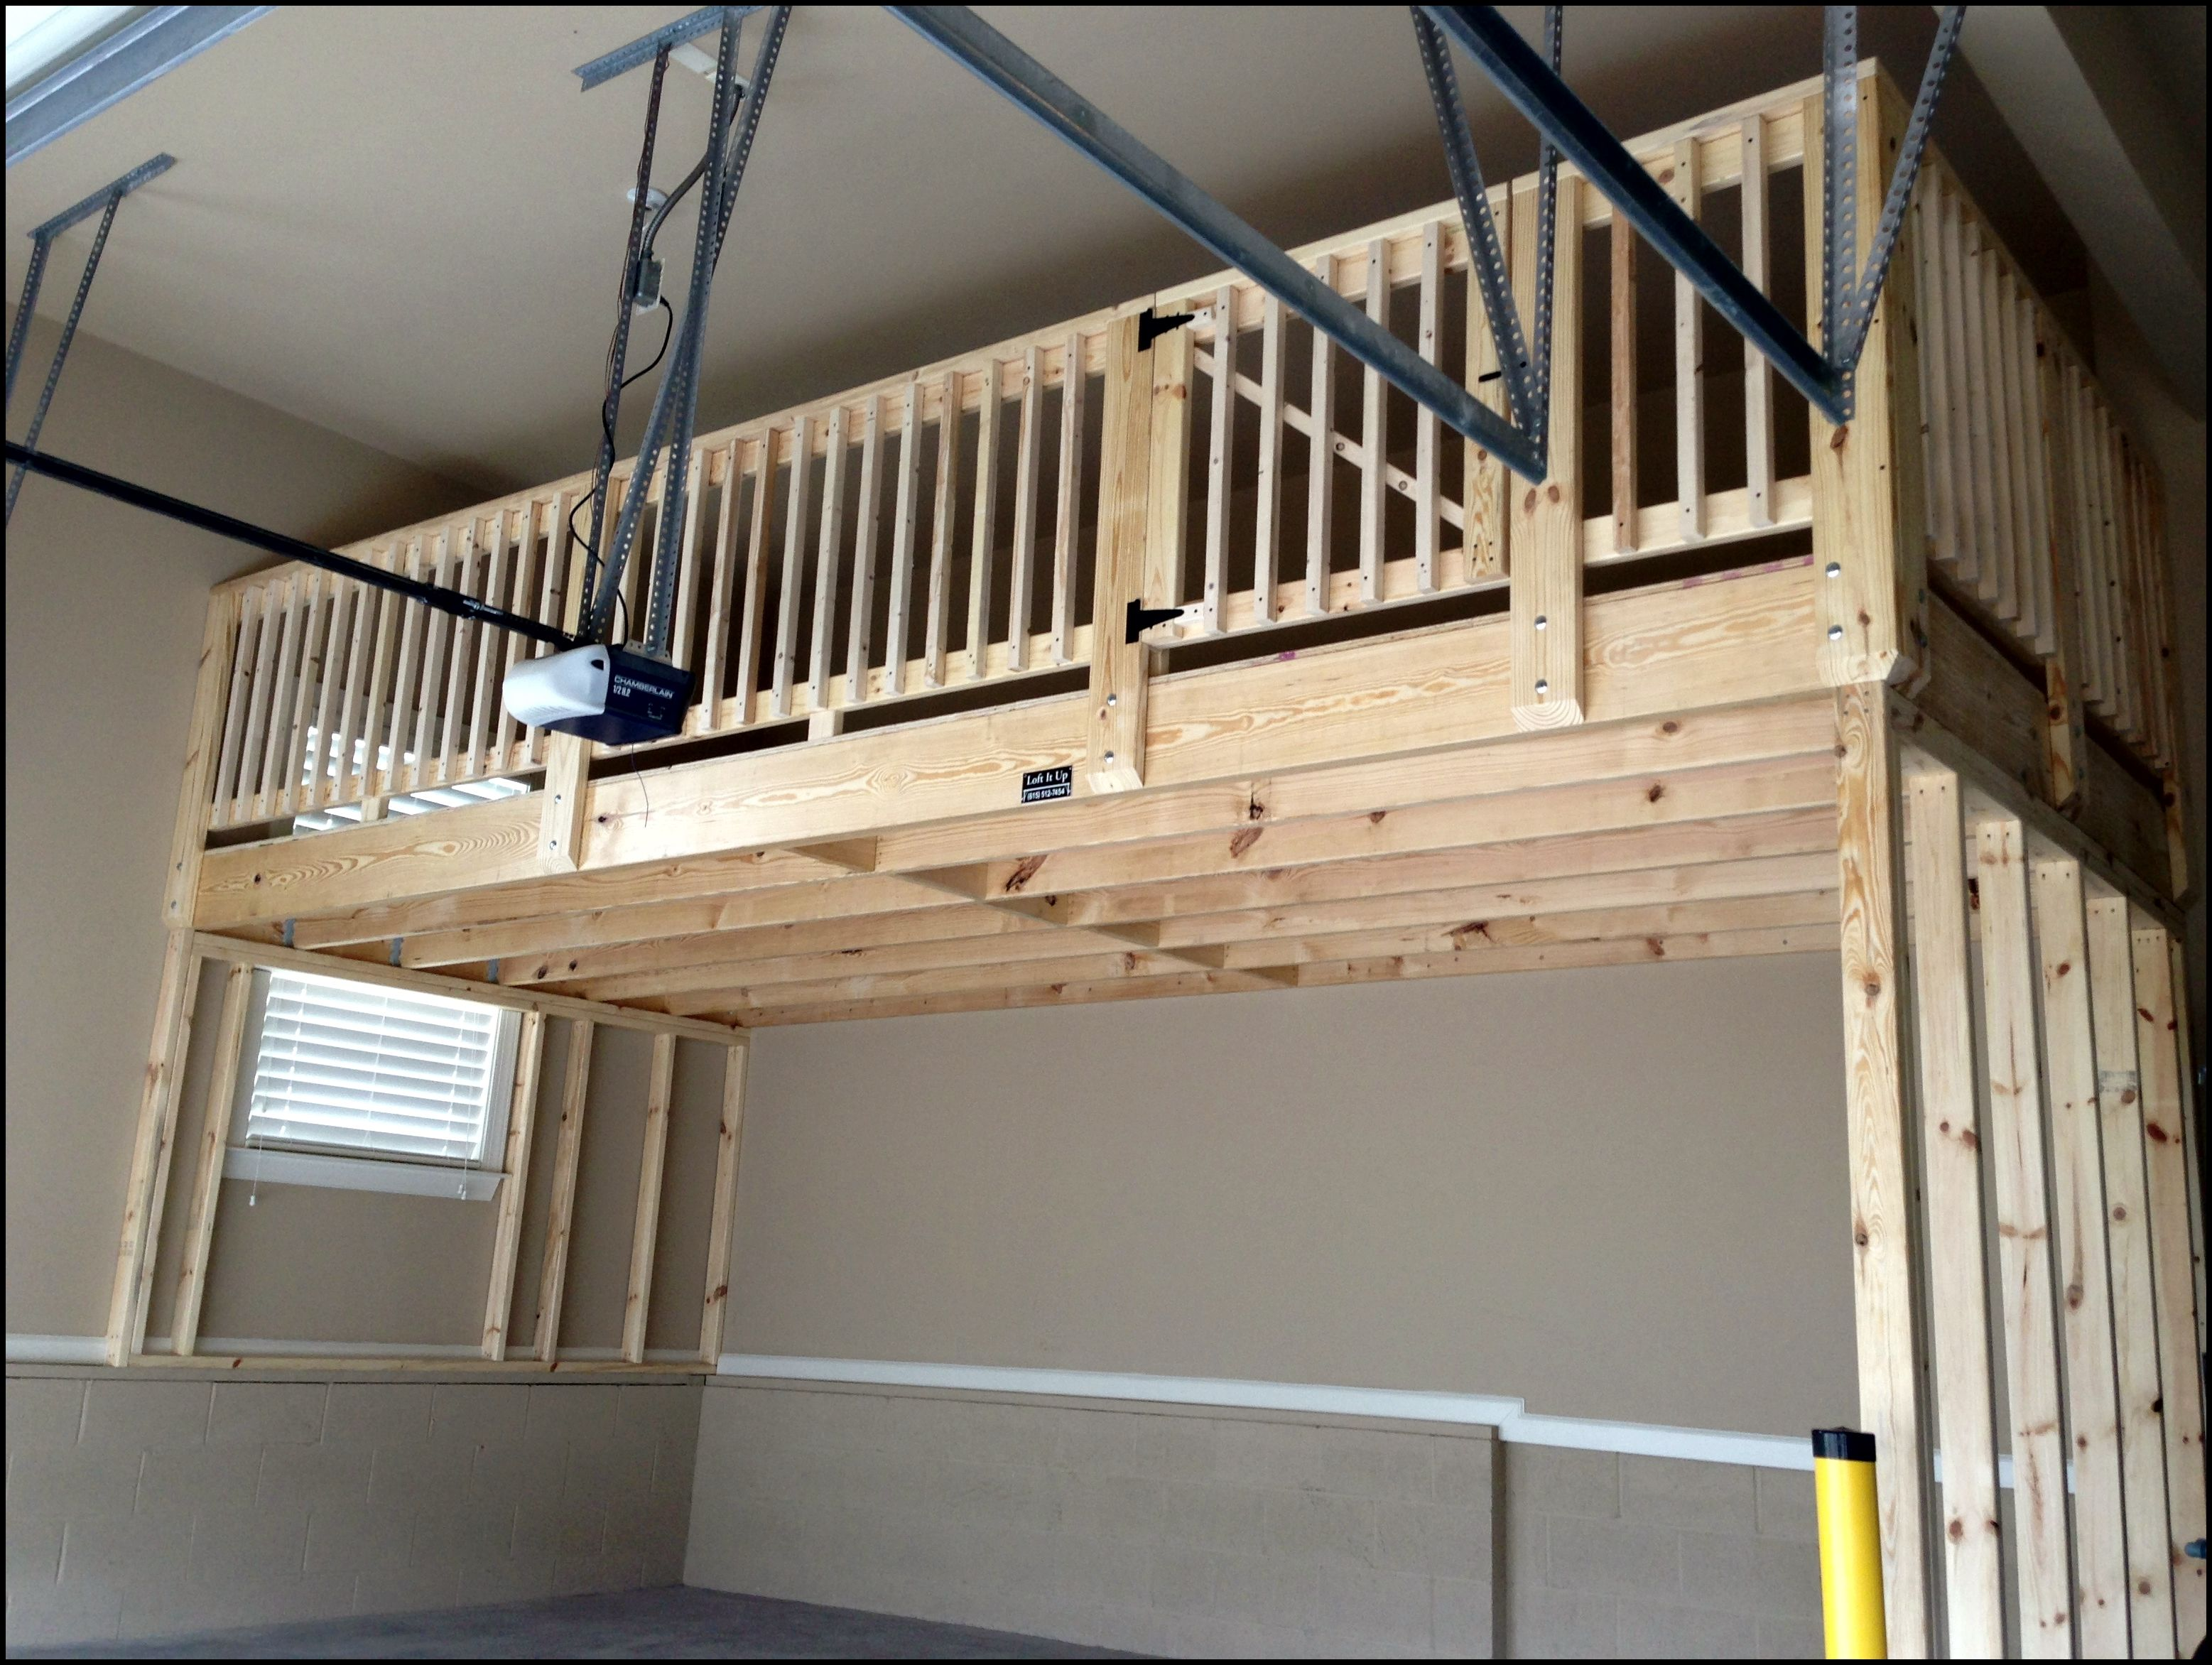 Exceptional Garage Storage Loft I Like The Door But Where Are The Stairs? Can I Put